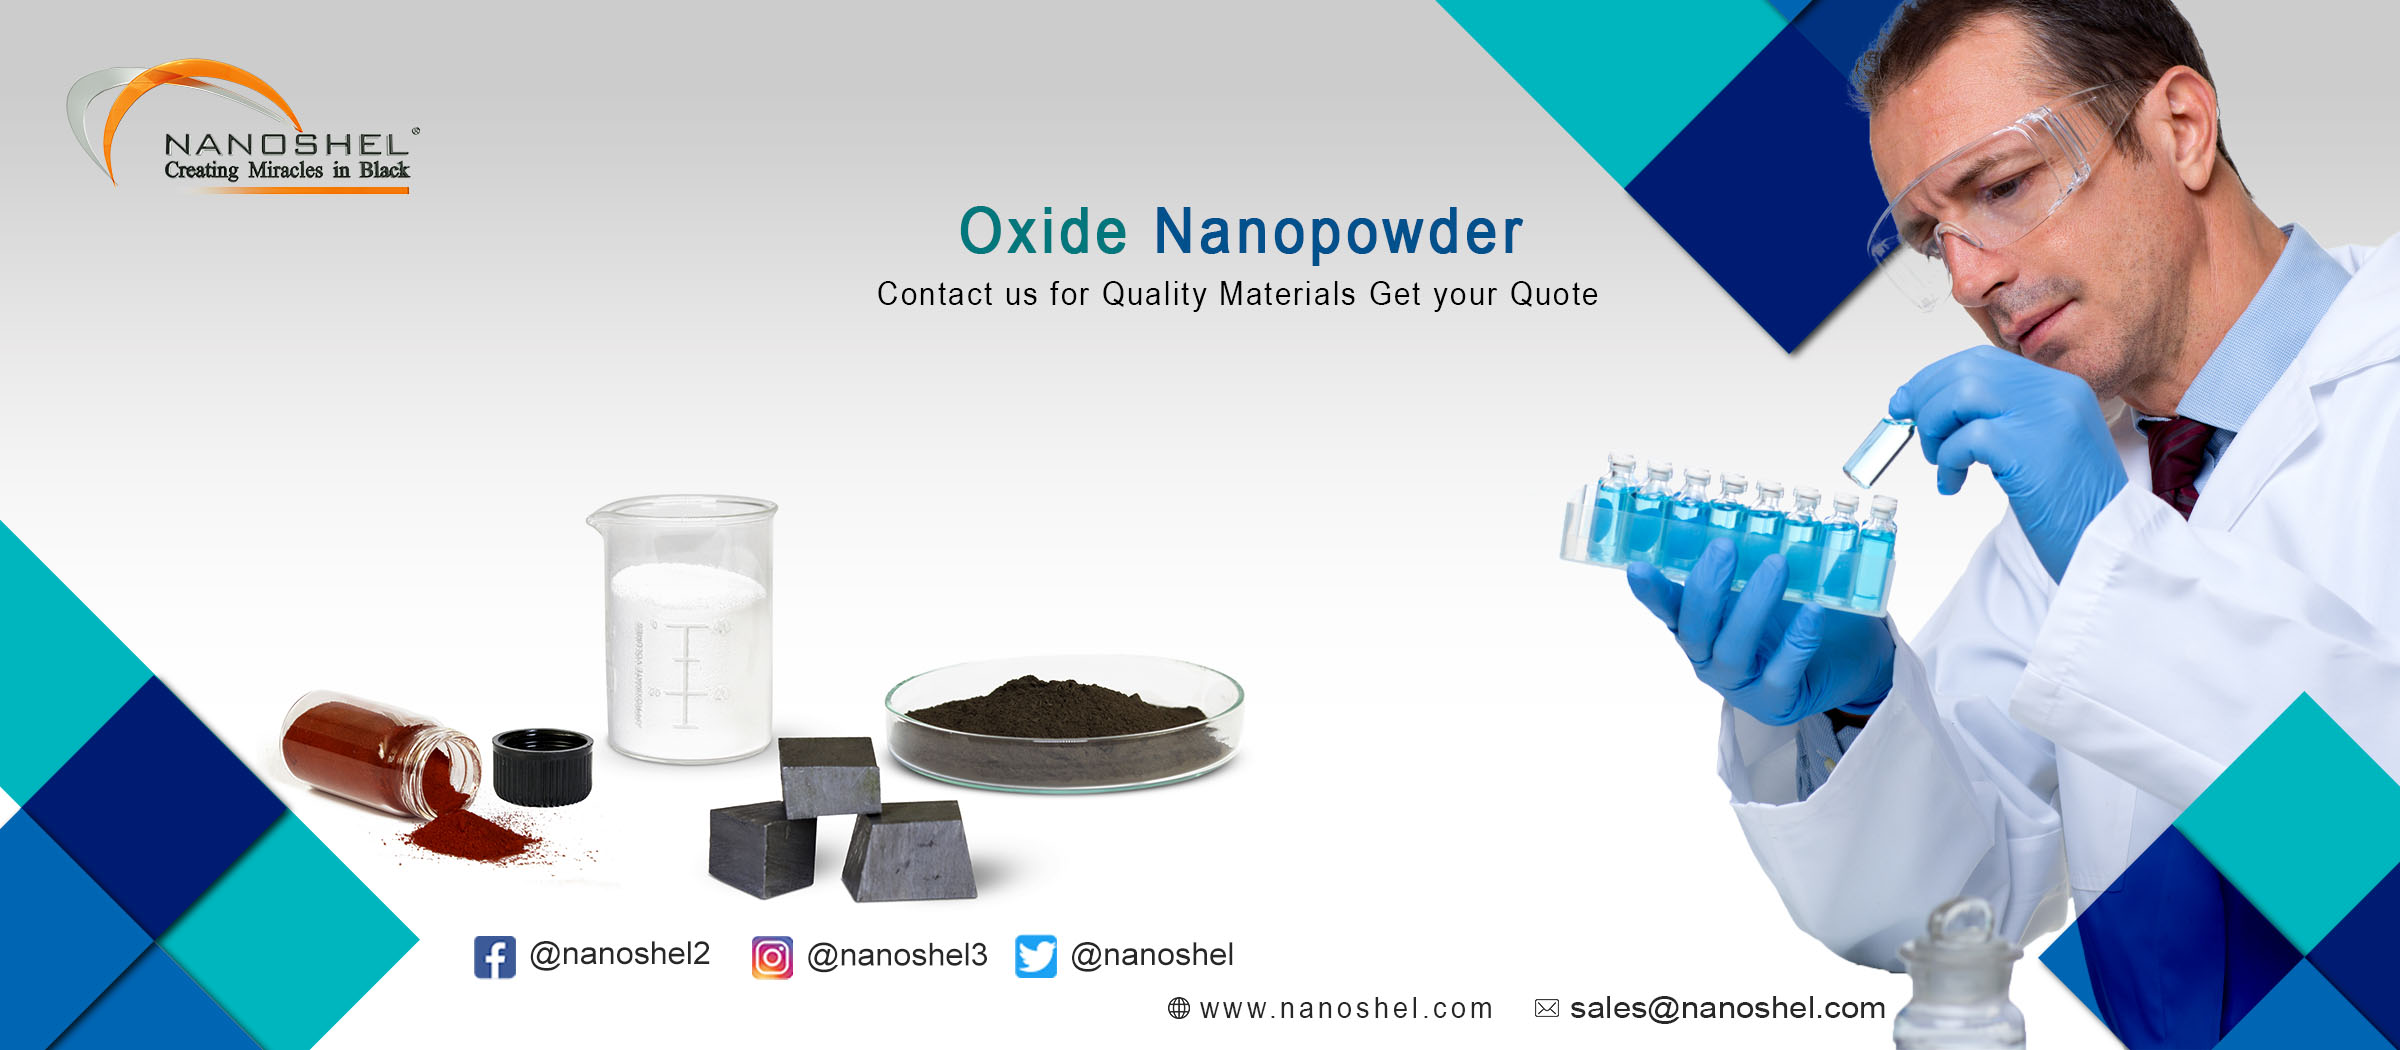 Antimony Oxide Nanoparticles